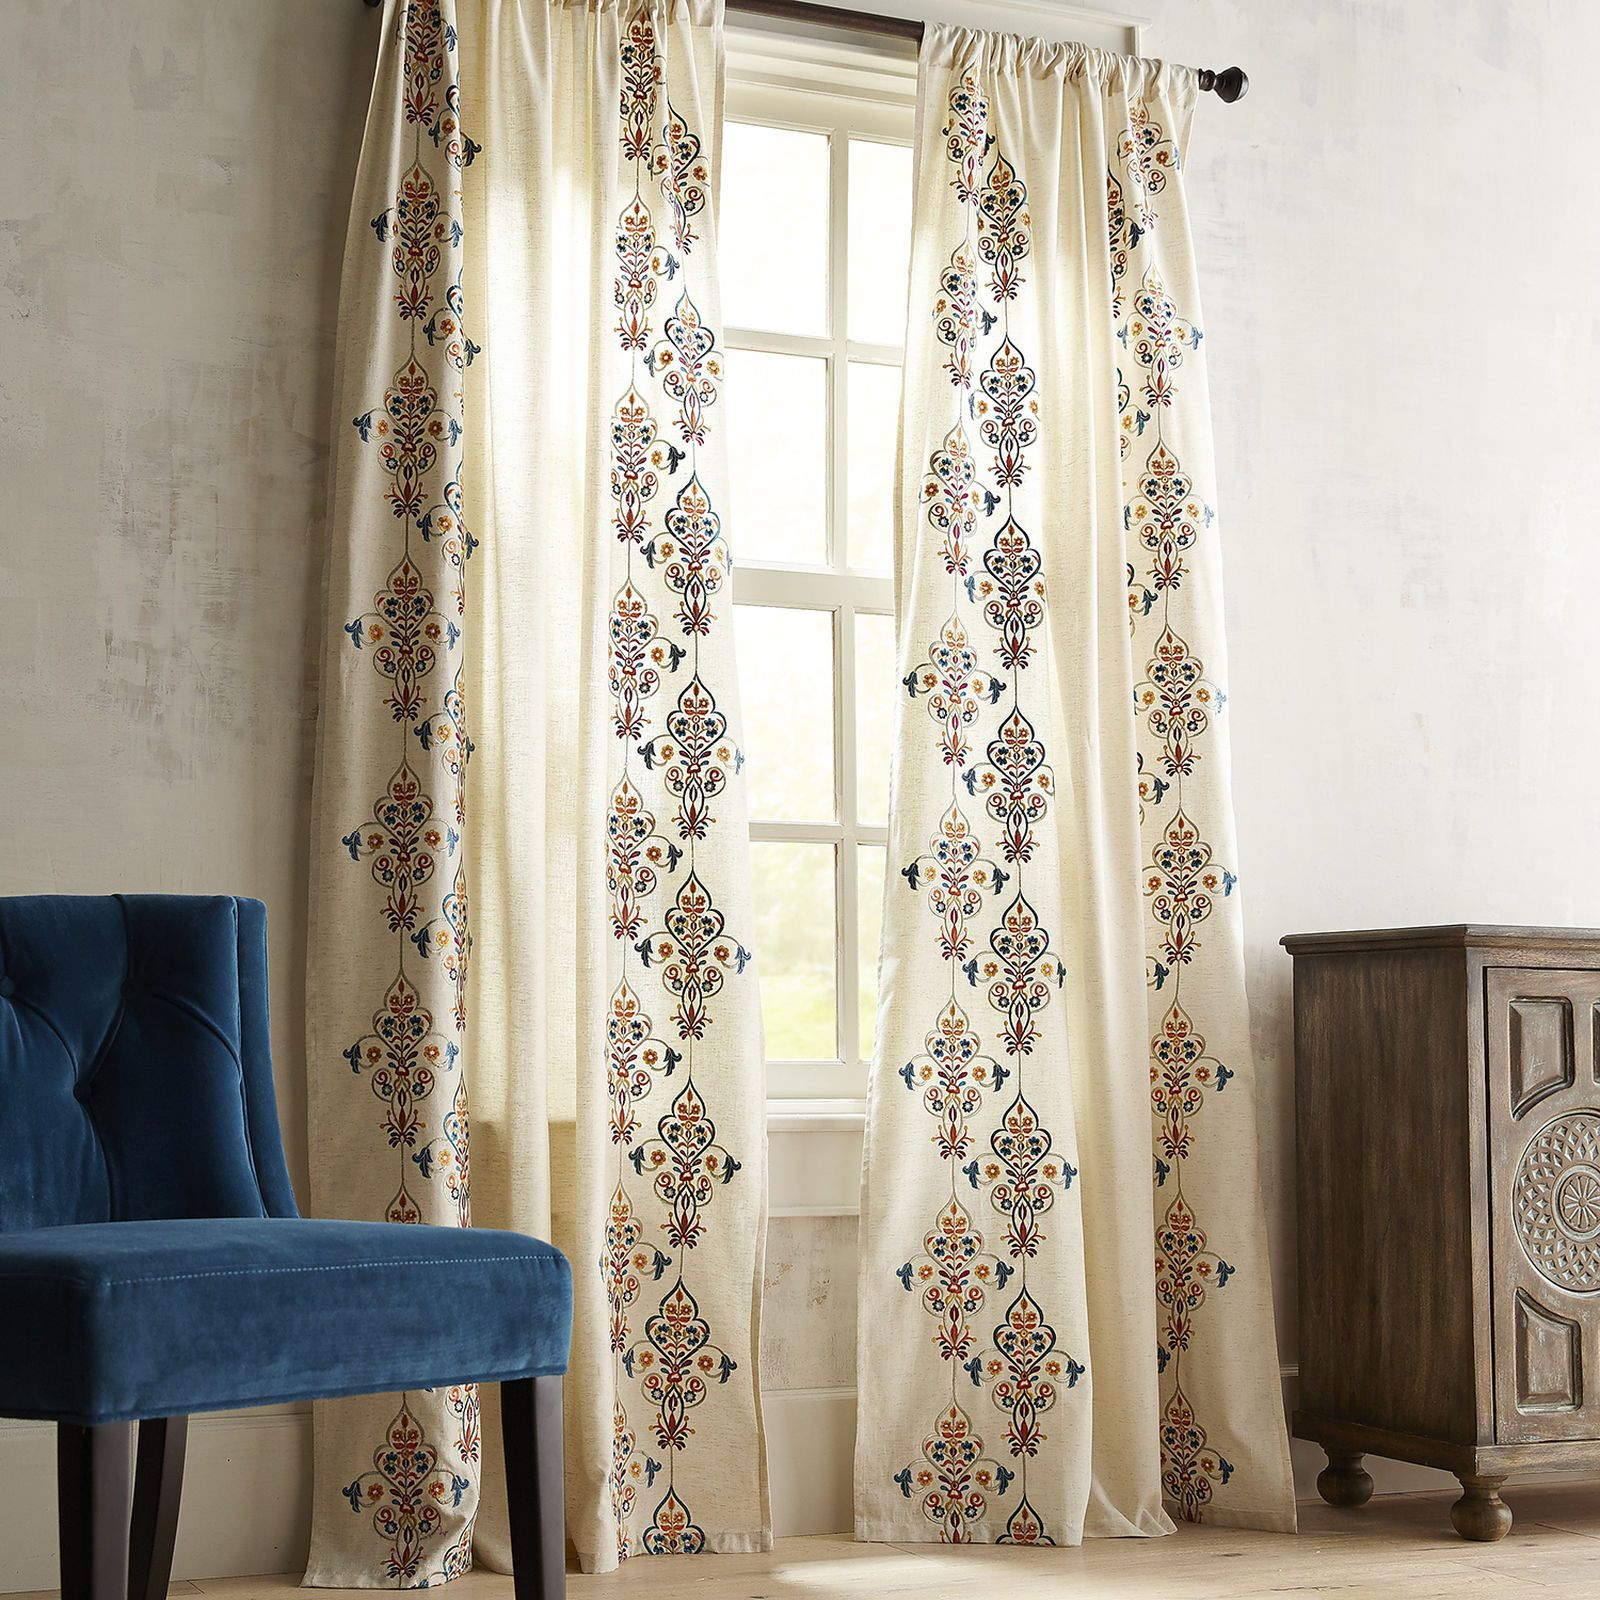 Boho Chic For Your Windows